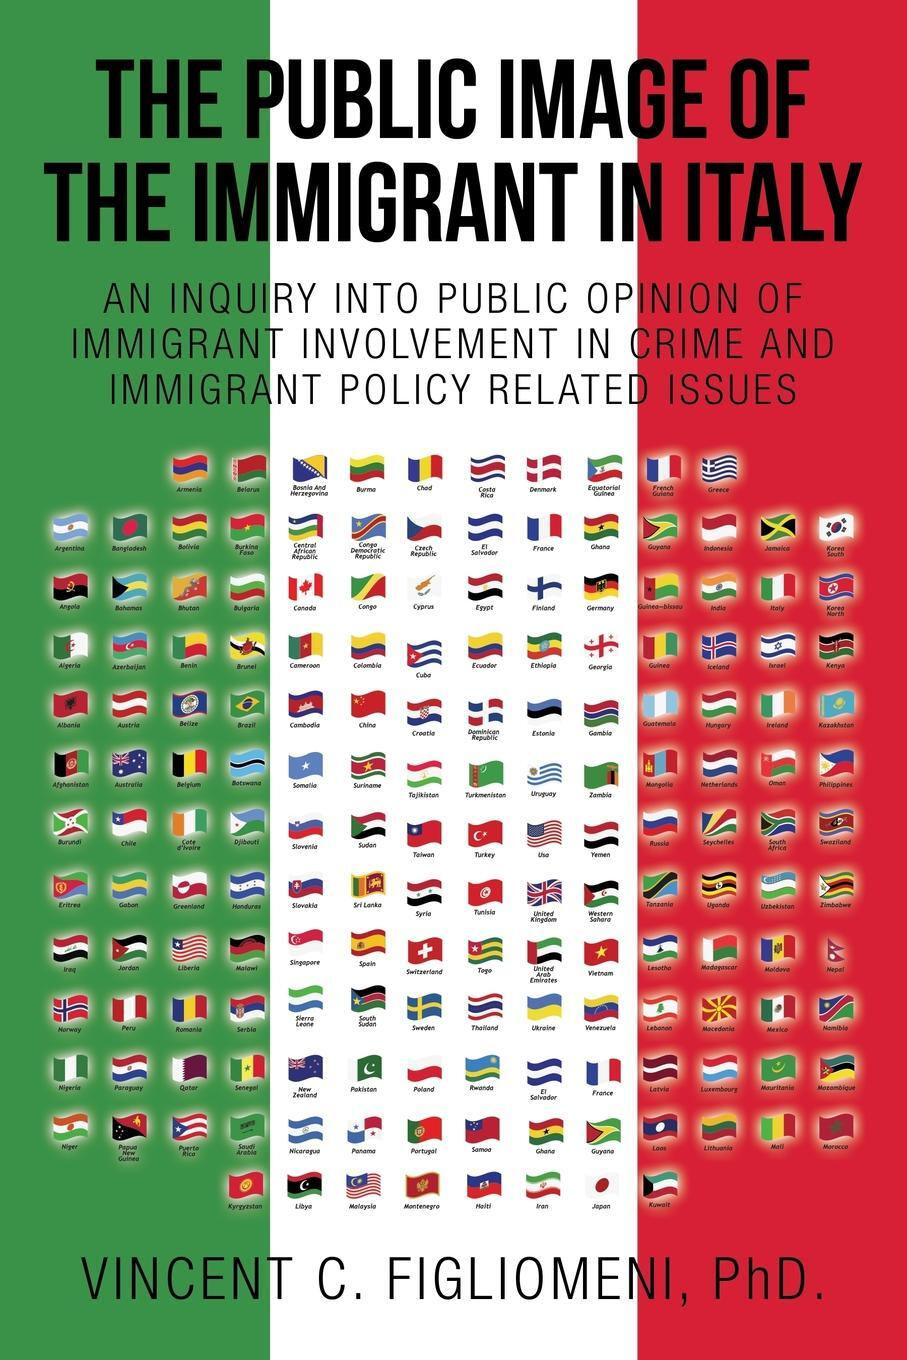 THE PUBLIC IMAGE OF THE IMMIGRANT IN ITALY. AN INQUIRY INTO PUBLIC OPINION OF IMMIGRANT INVOLVEMENT IN CRIME AND IMMIGRANT POLICY RELATED ISSUES